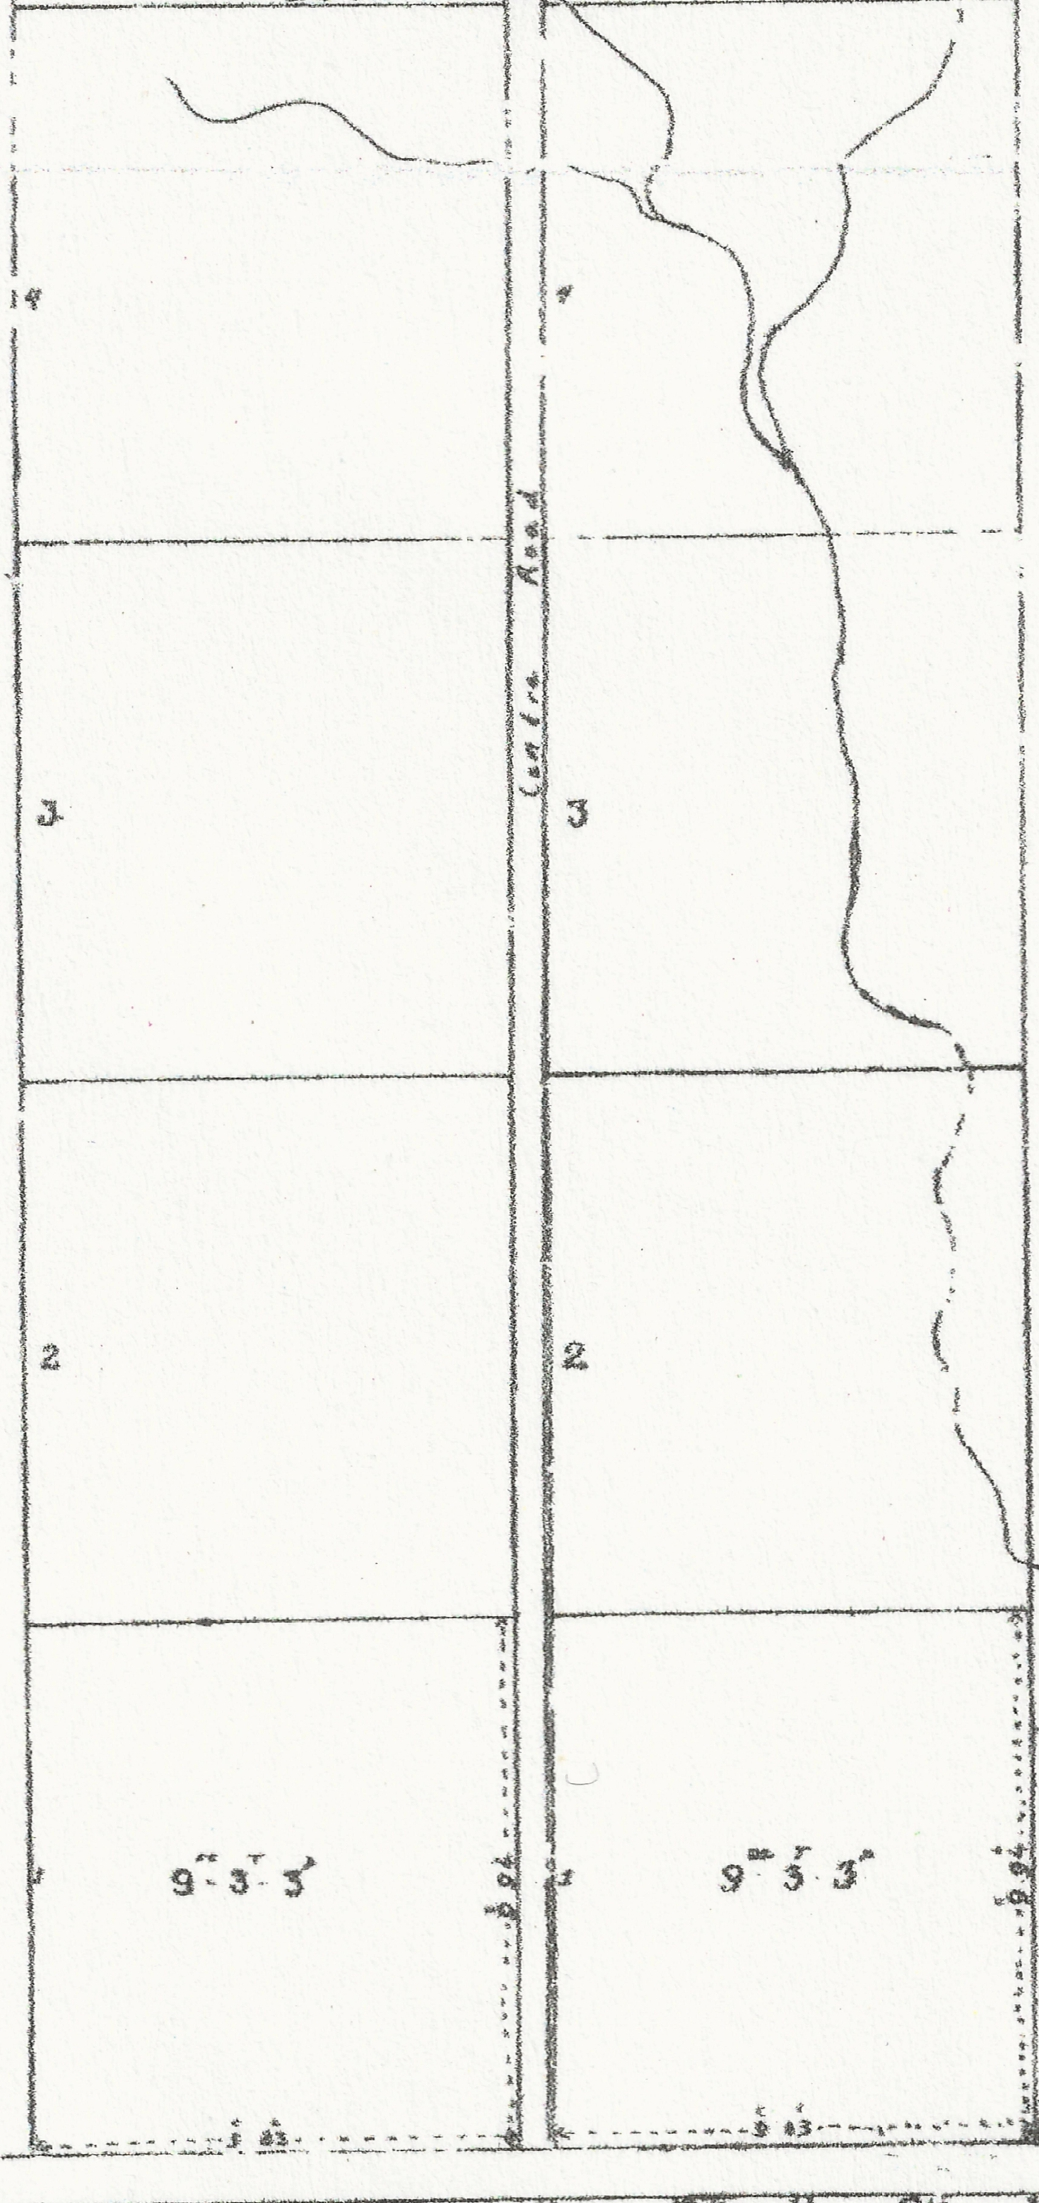 Southern Portion 1884 PLAN OF SURVEY of Lot 13 and Broken Front